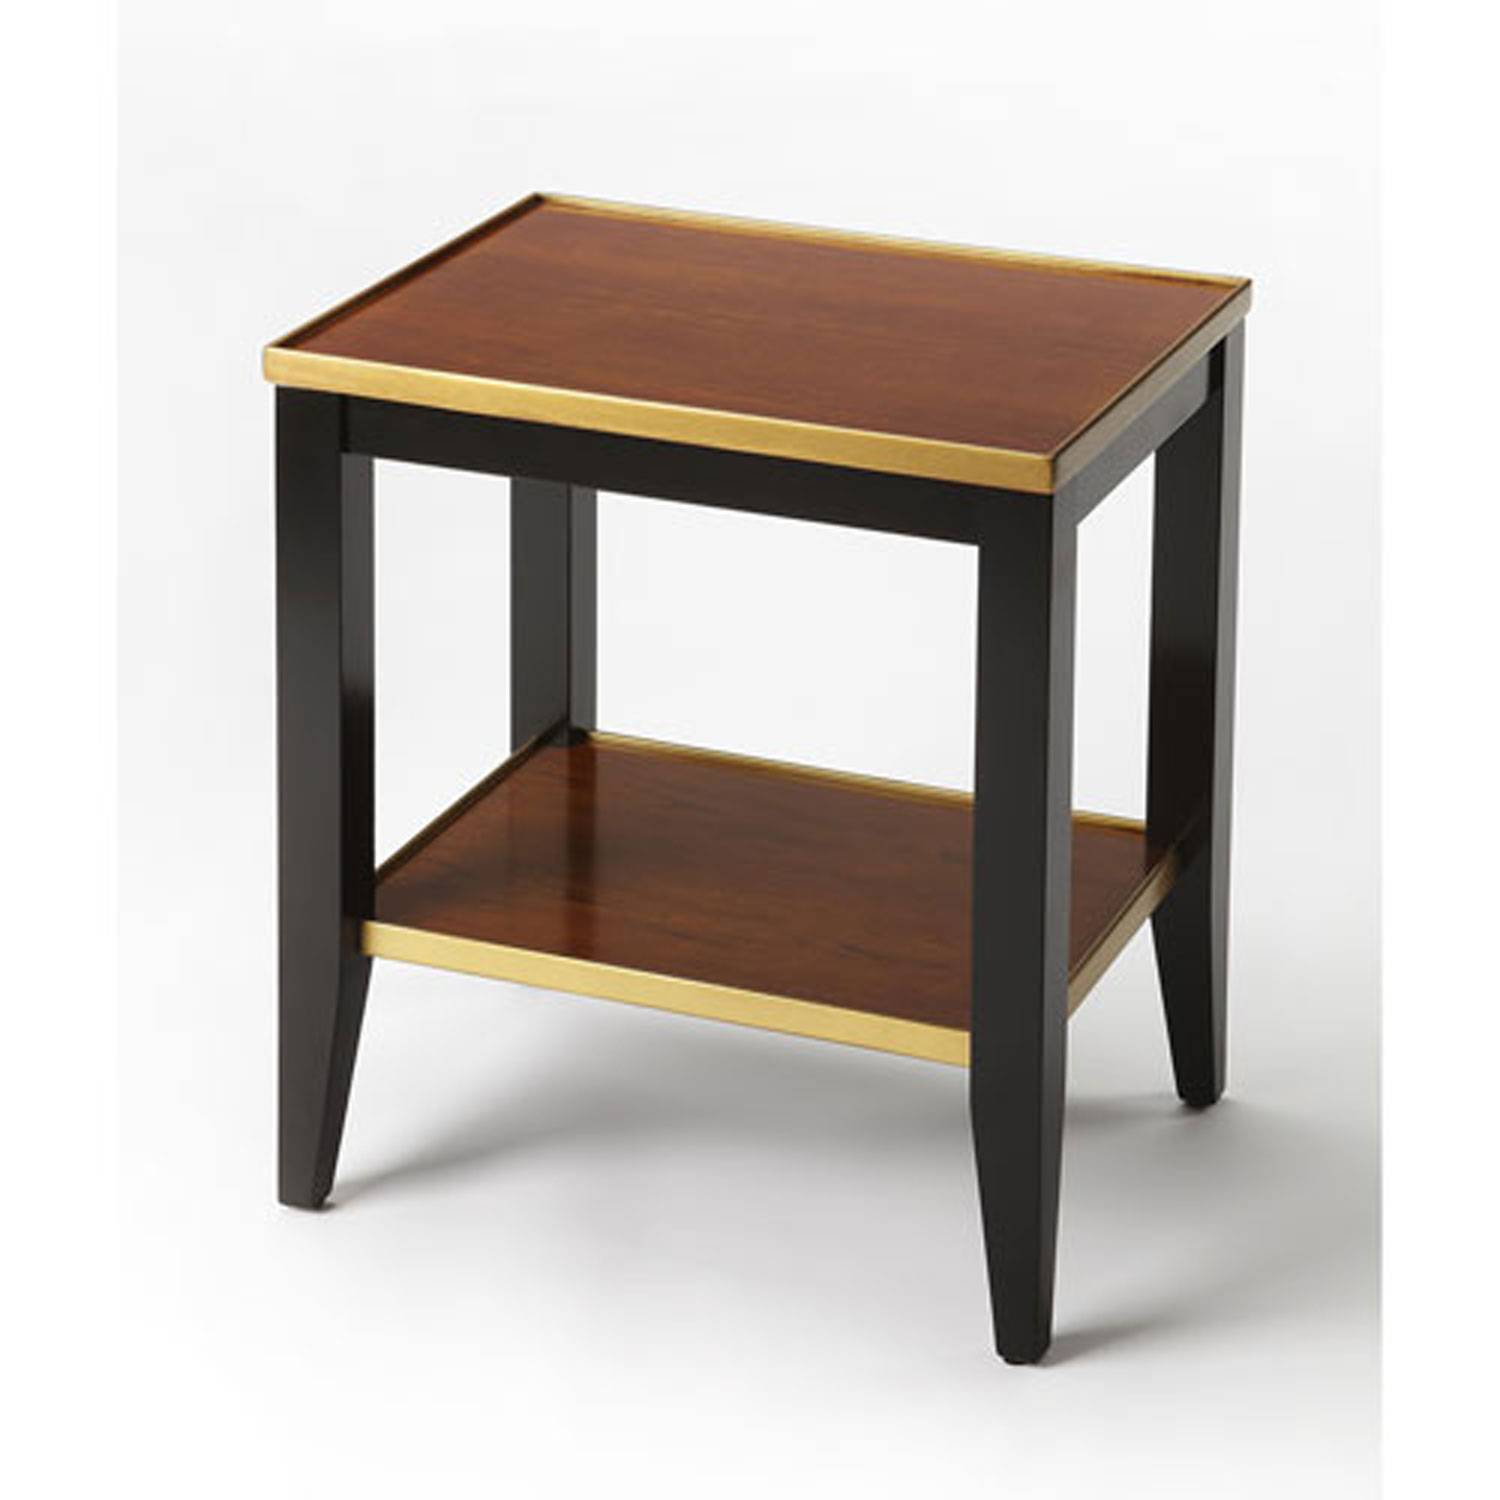 first fulton cherry wood accent table bellacor eero aarnio ball chair white resin end pool covers bunnings nightstand outdoor storage bench narrow sofa console pottery barn rustic